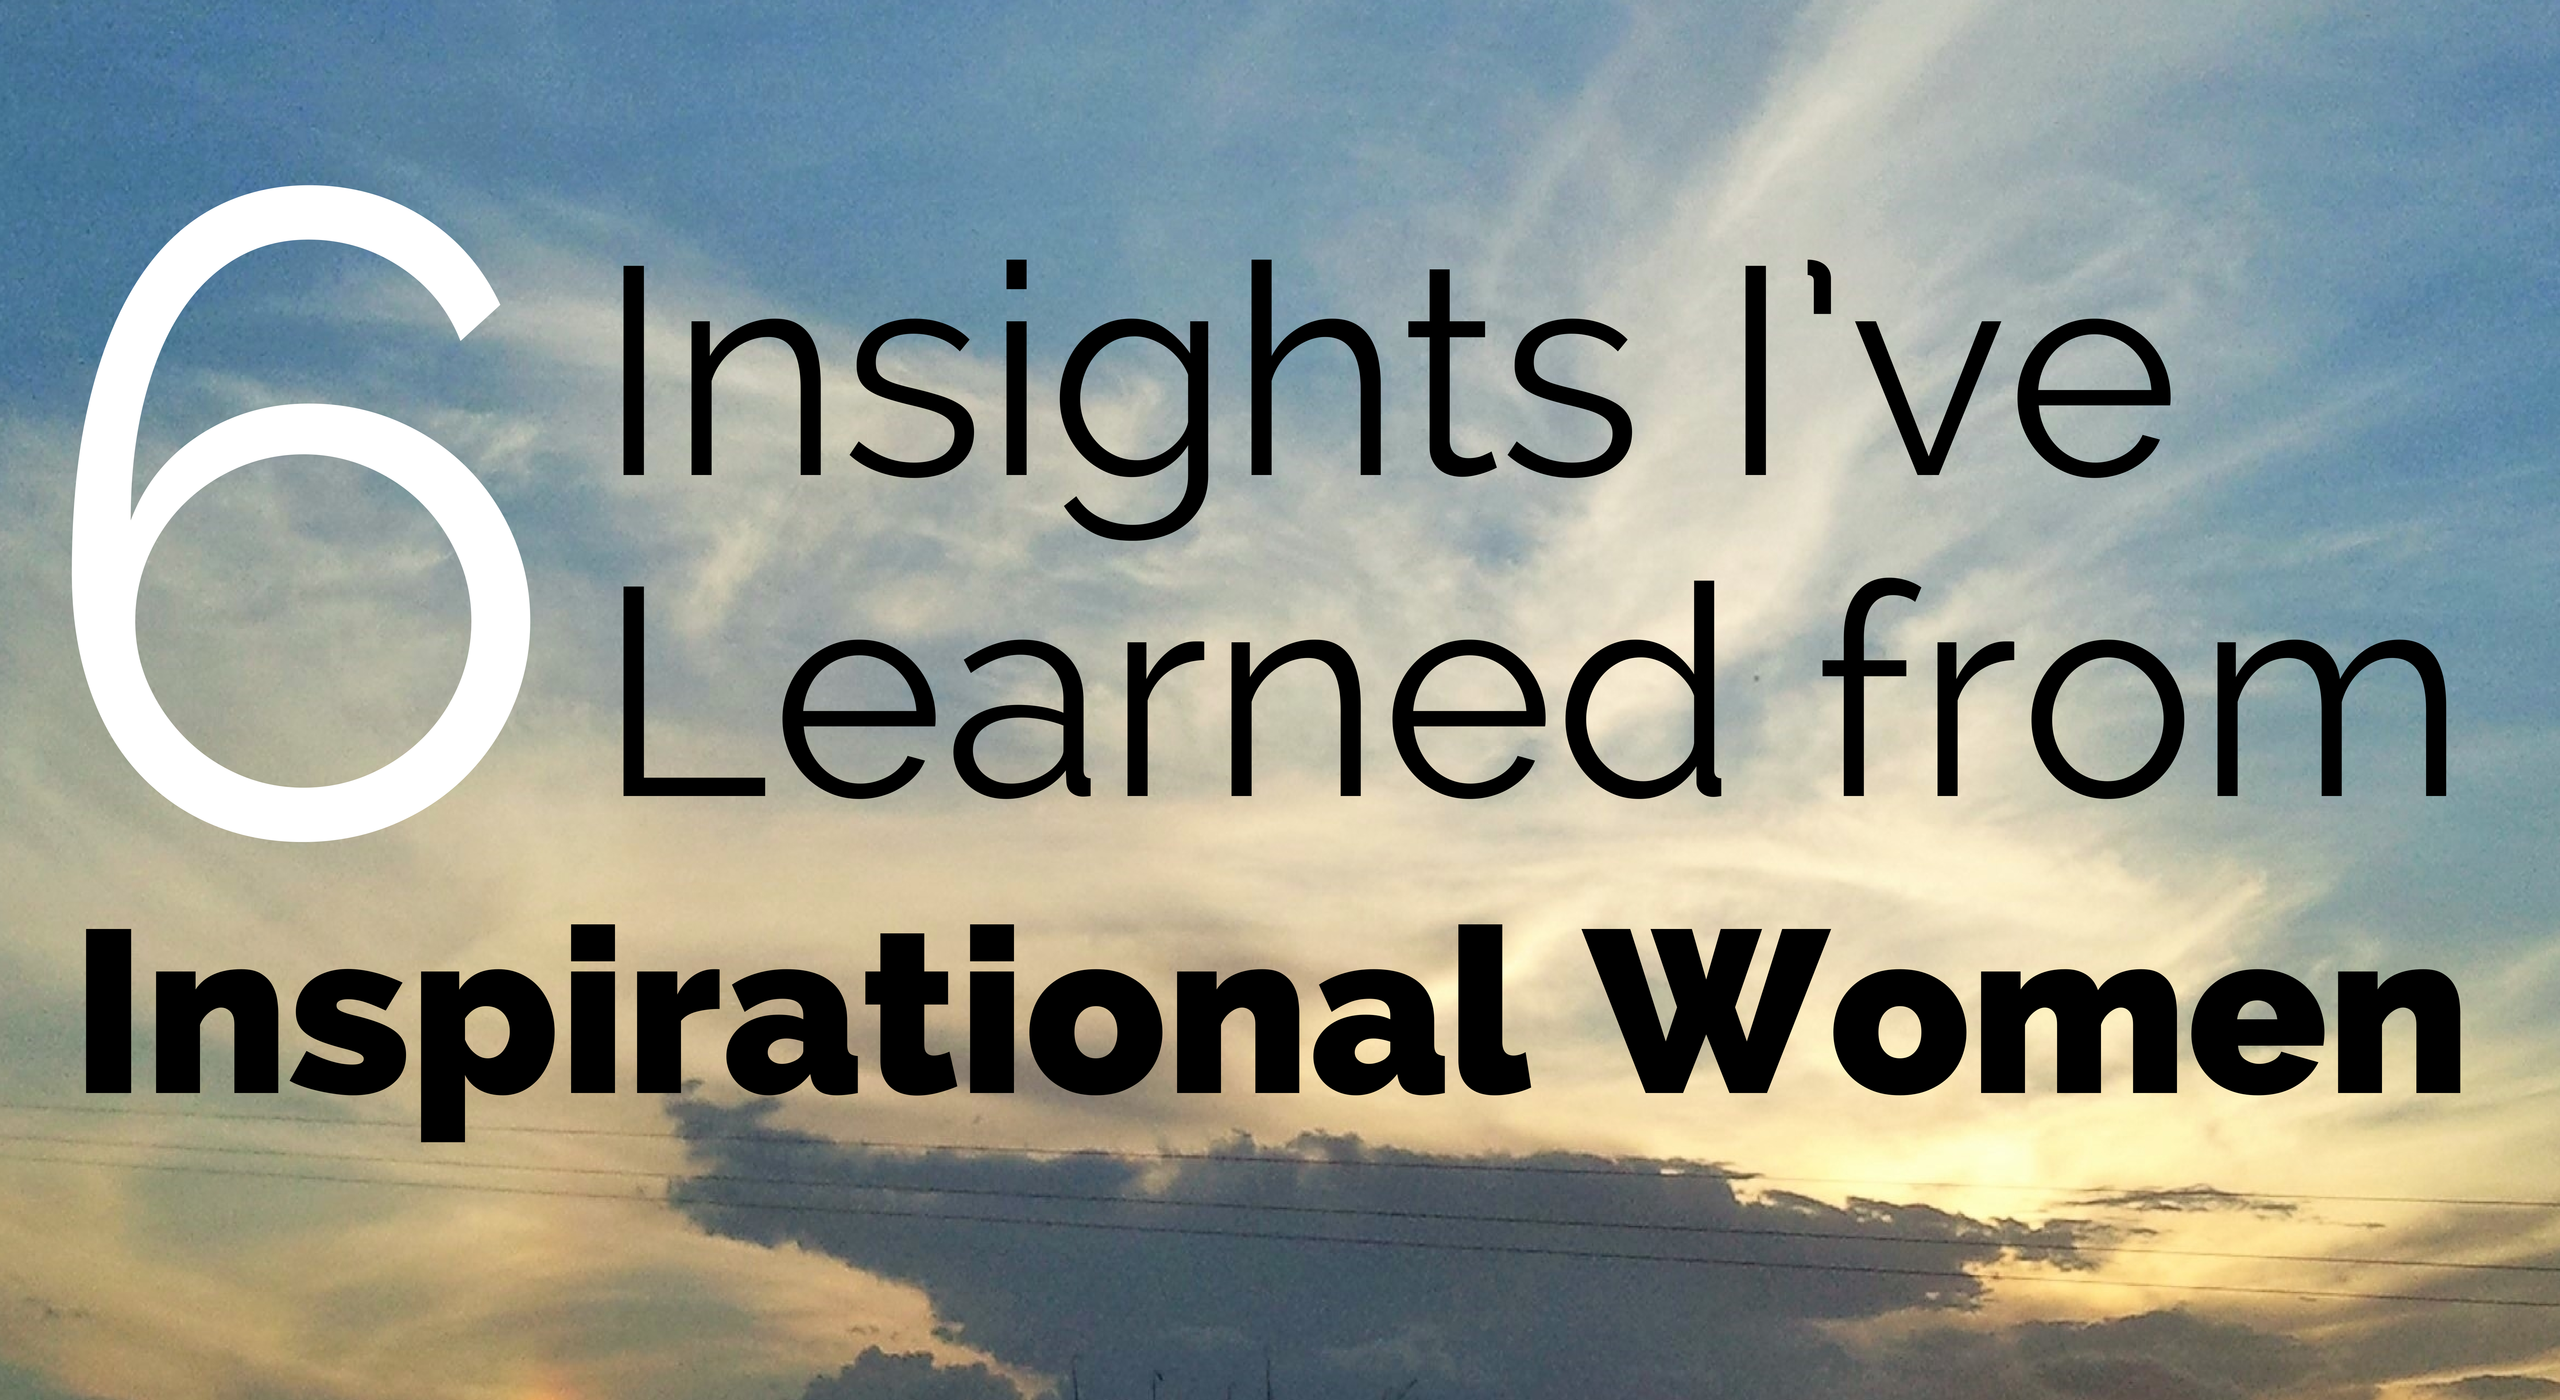 6 Insights I Learned from Inspirational Women